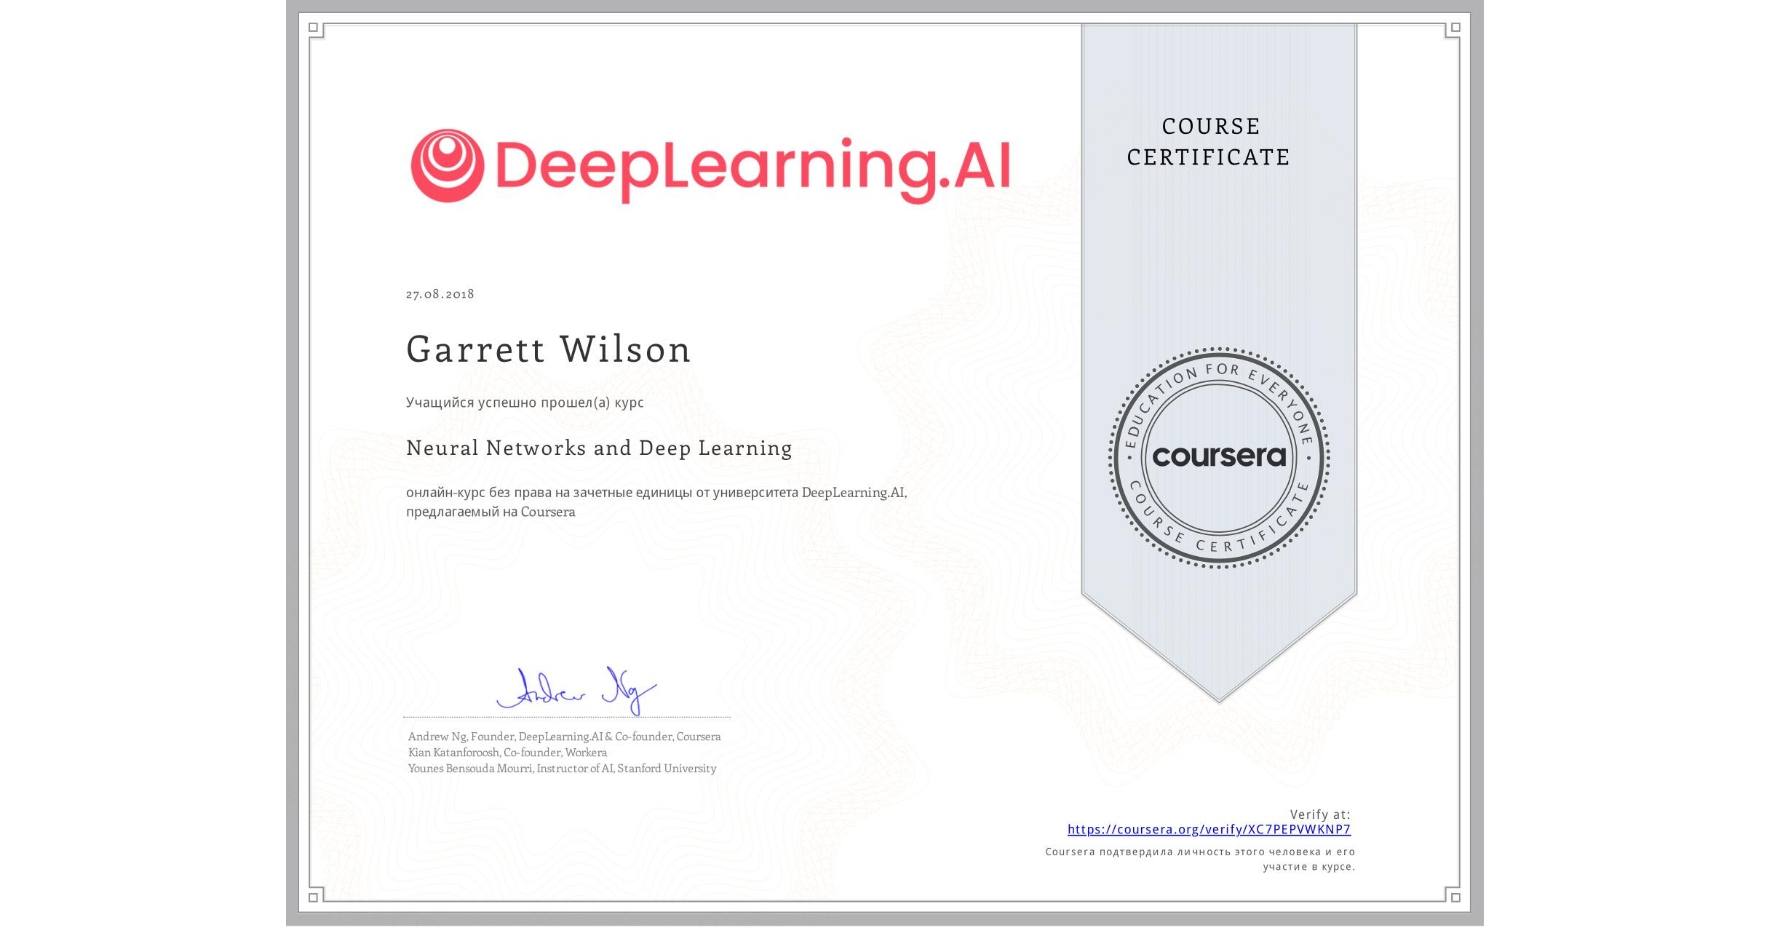 View certificate for Garrett Wilson, Neural Networks and Deep Learning, an online non-credit course authorized by DeepLearning.AI and offered through Coursera